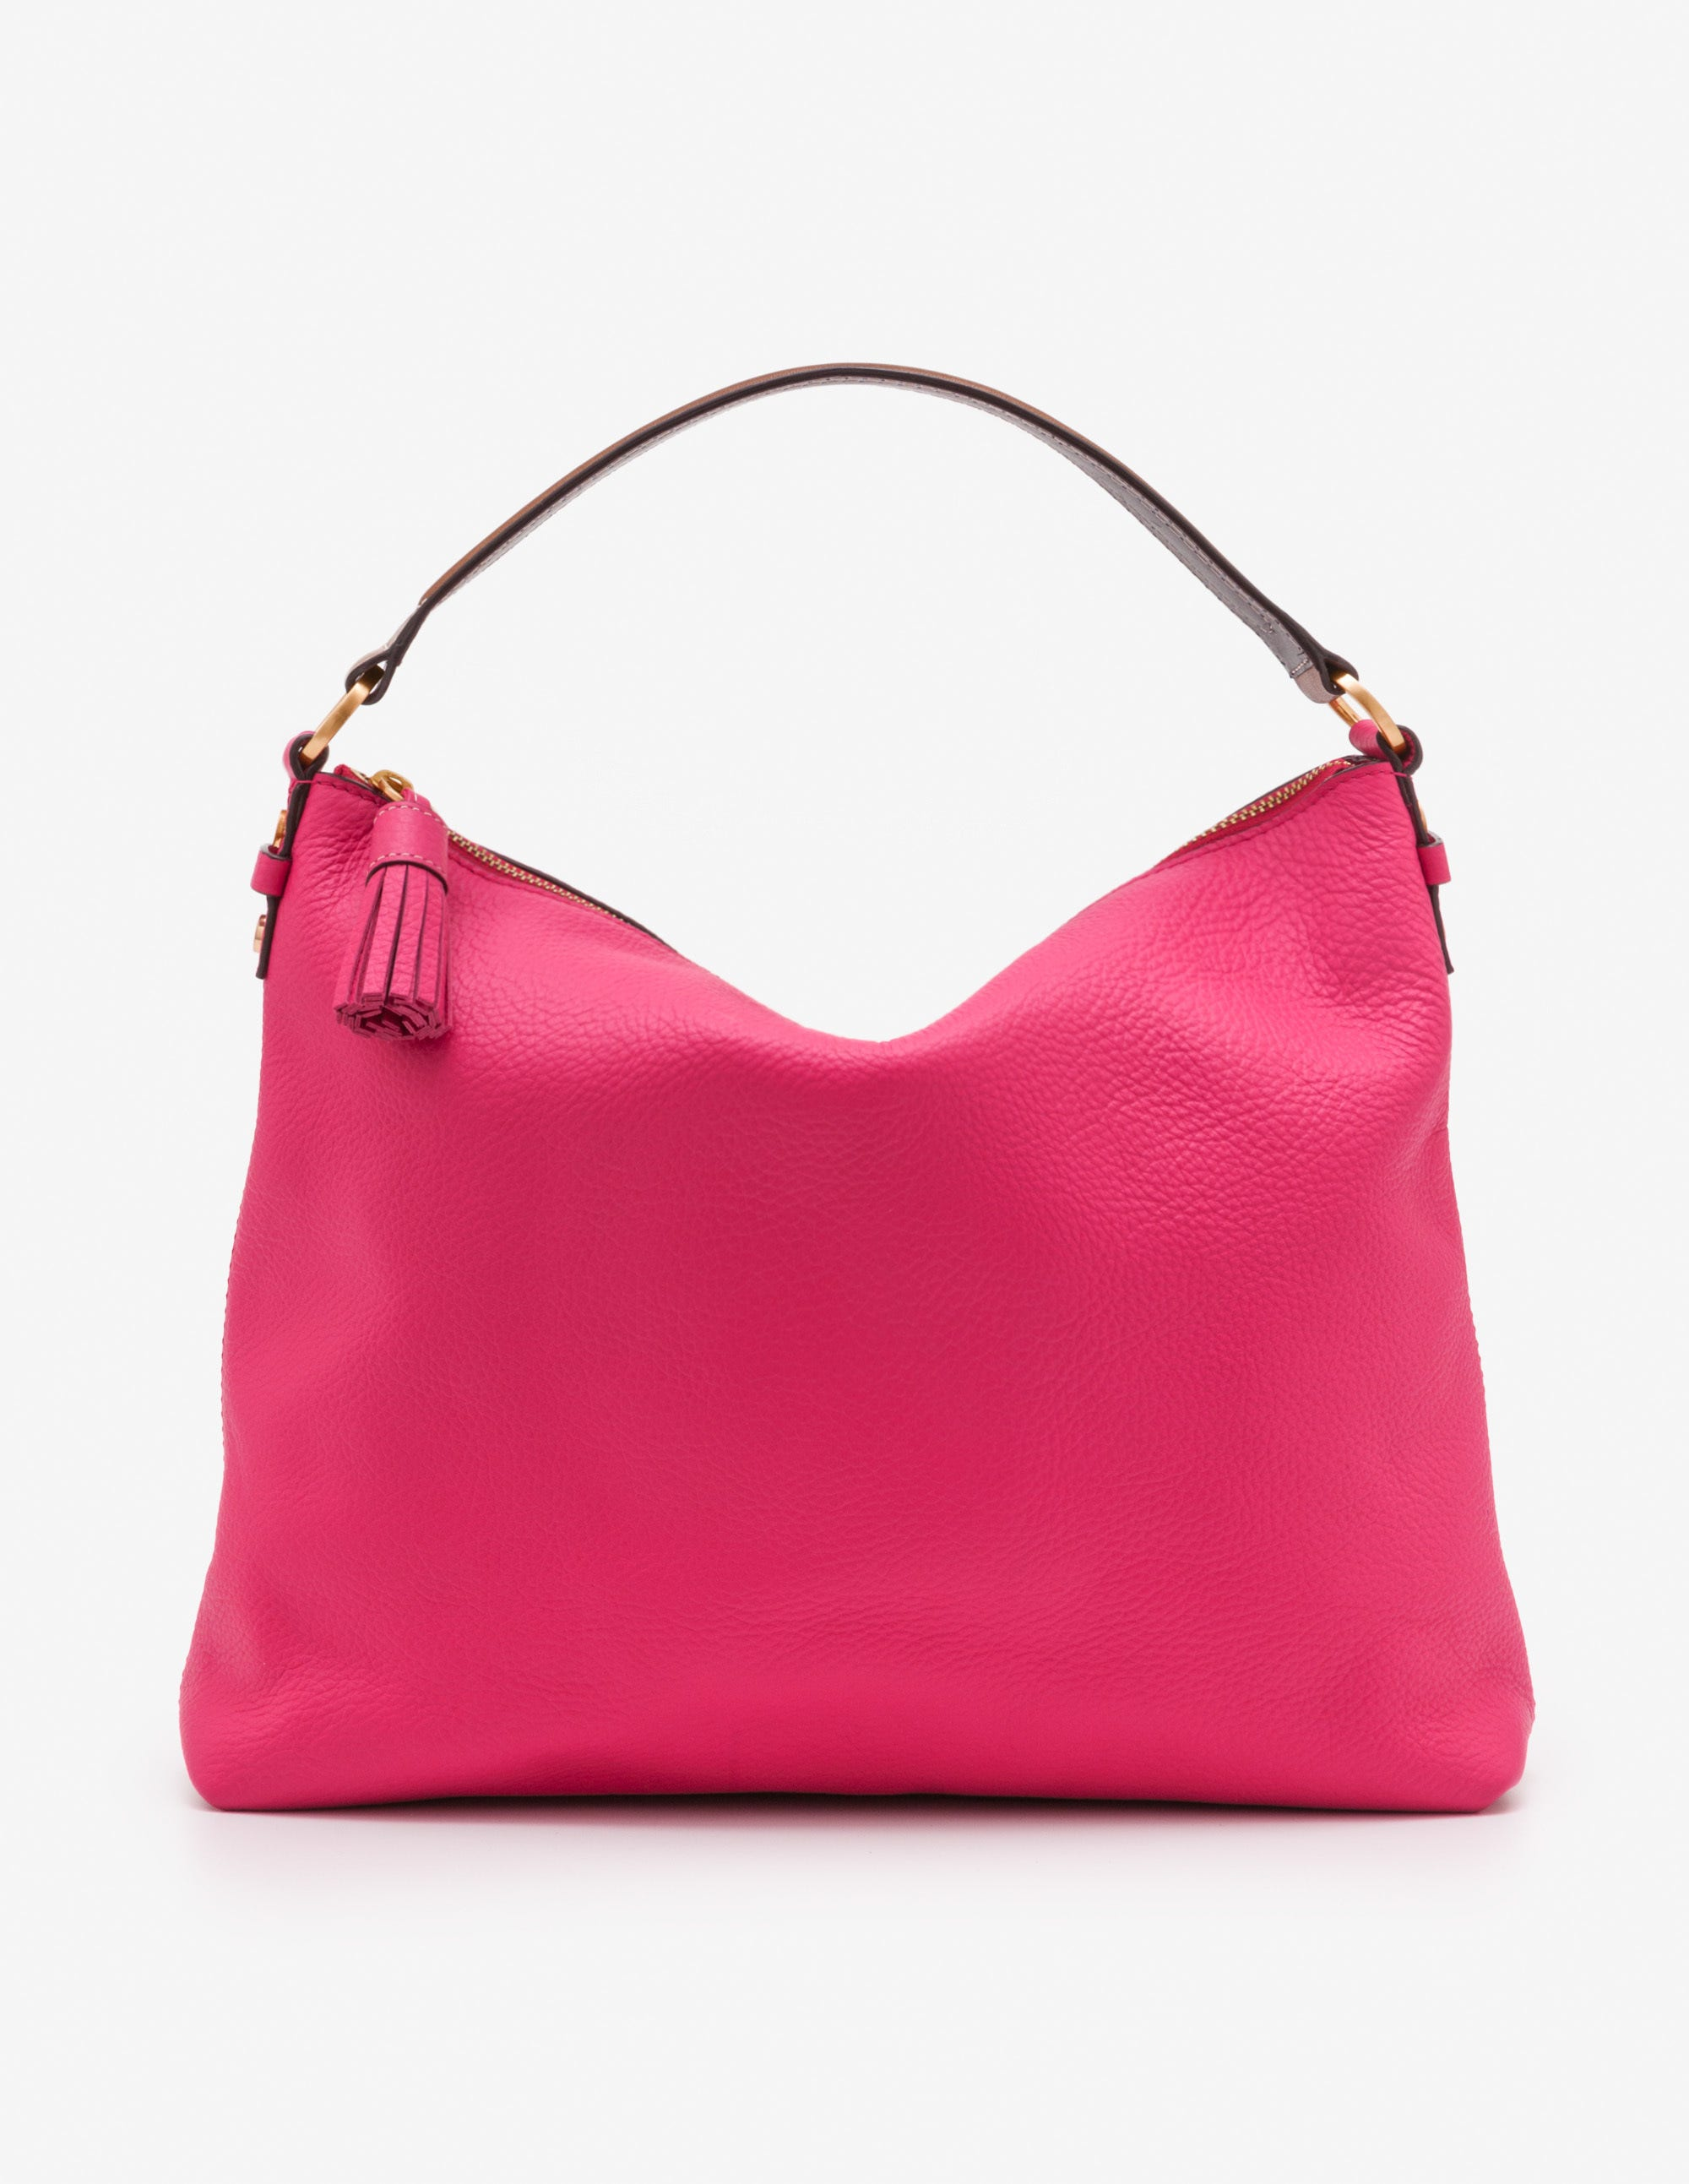 6b14f21d500dc7 Pink at Boden with the Renee Shoulder Bag £150 H2F9 gives you 20% off at  Boden.